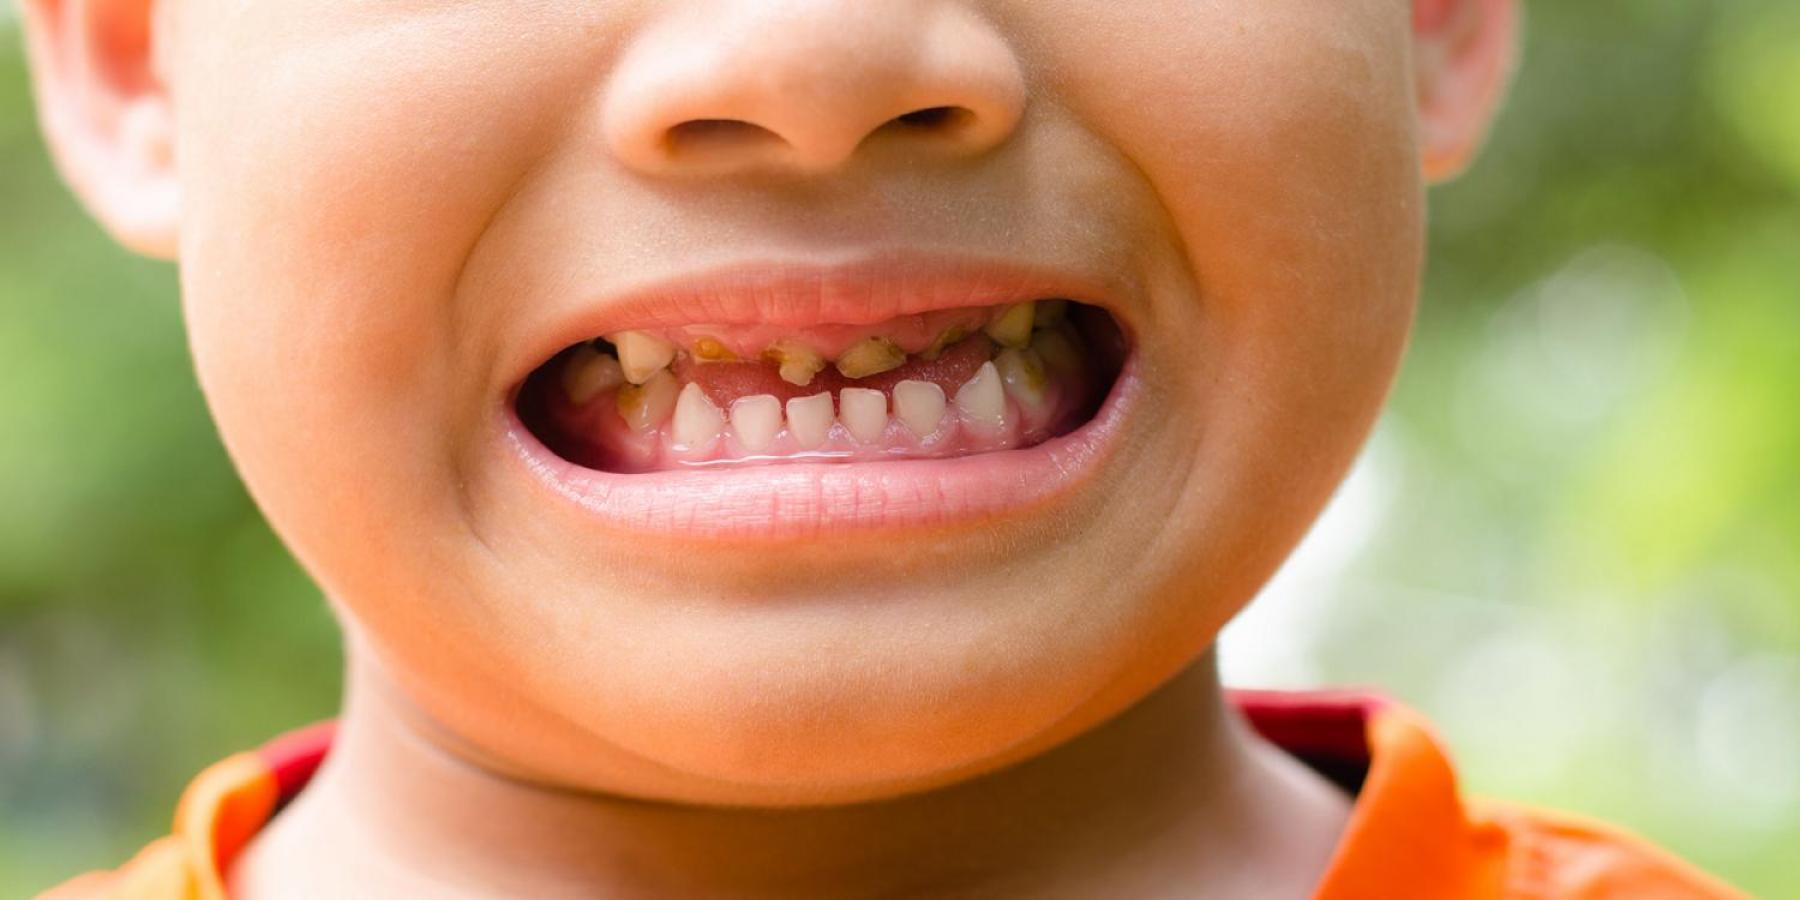 How 54 young teeth horrified a dentist, and motivated leaders to